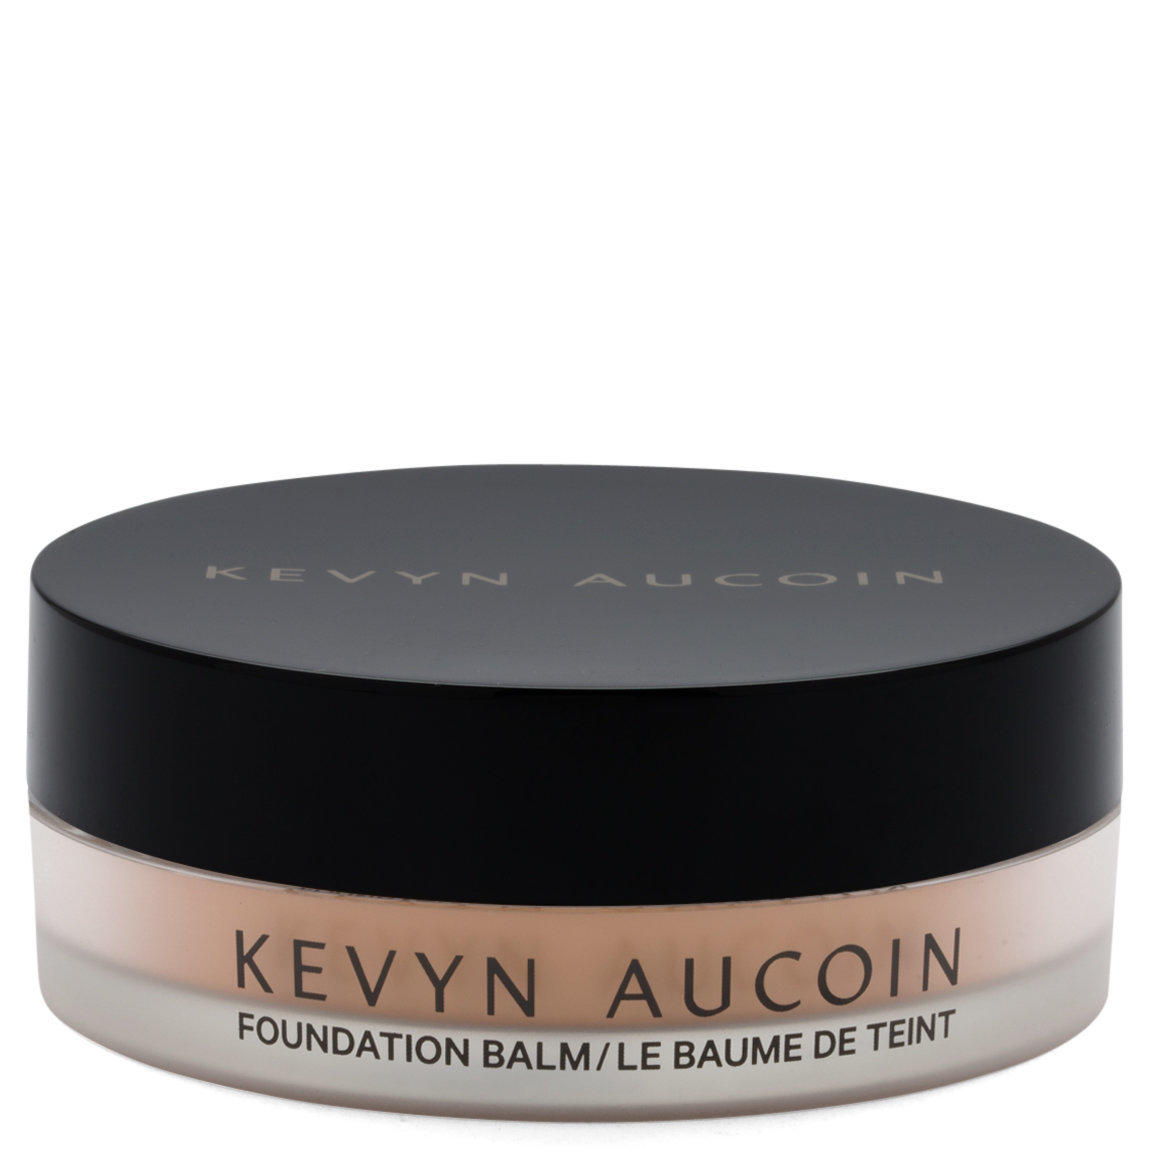 Kevyn Aucoin Foundation Balm Medium FB7.5